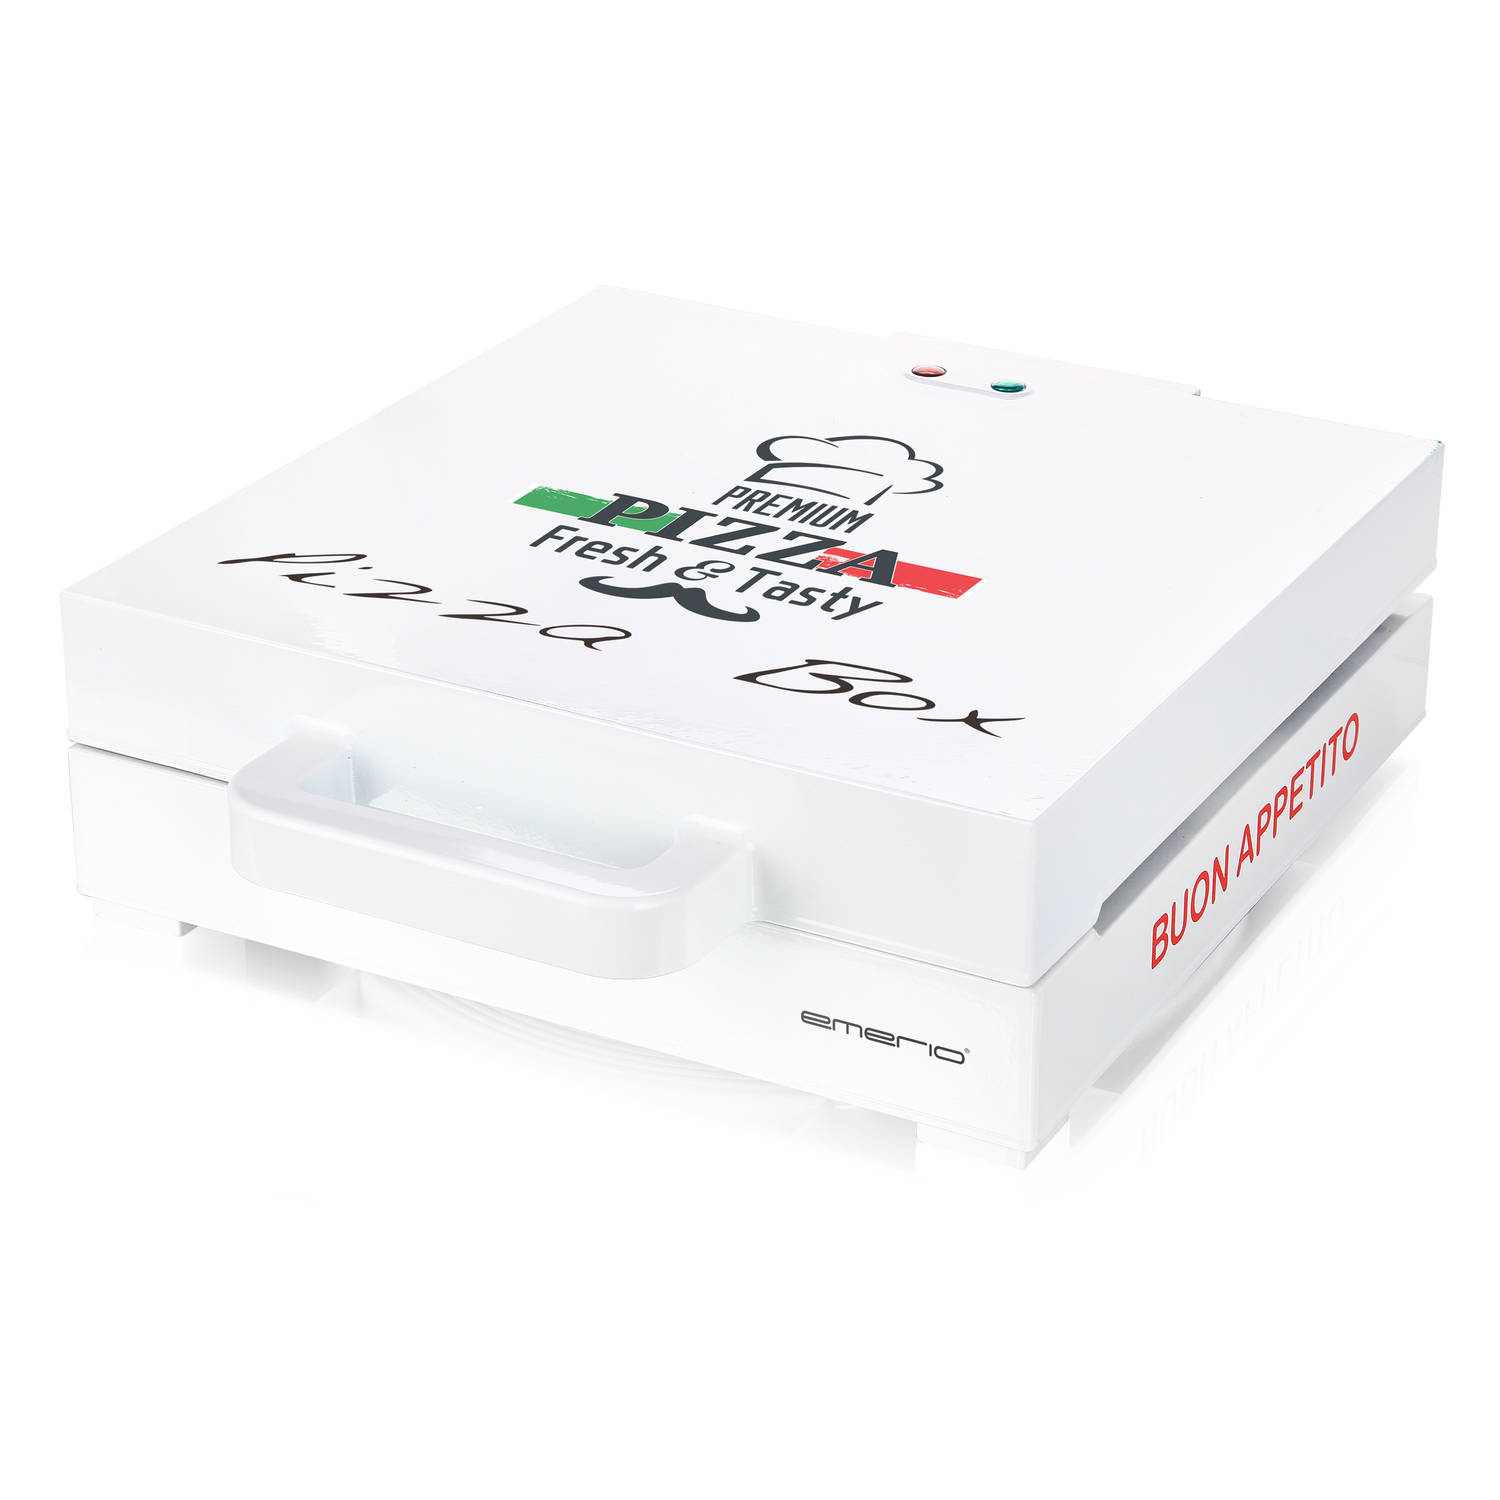 Emerio pizzabox PB-115331